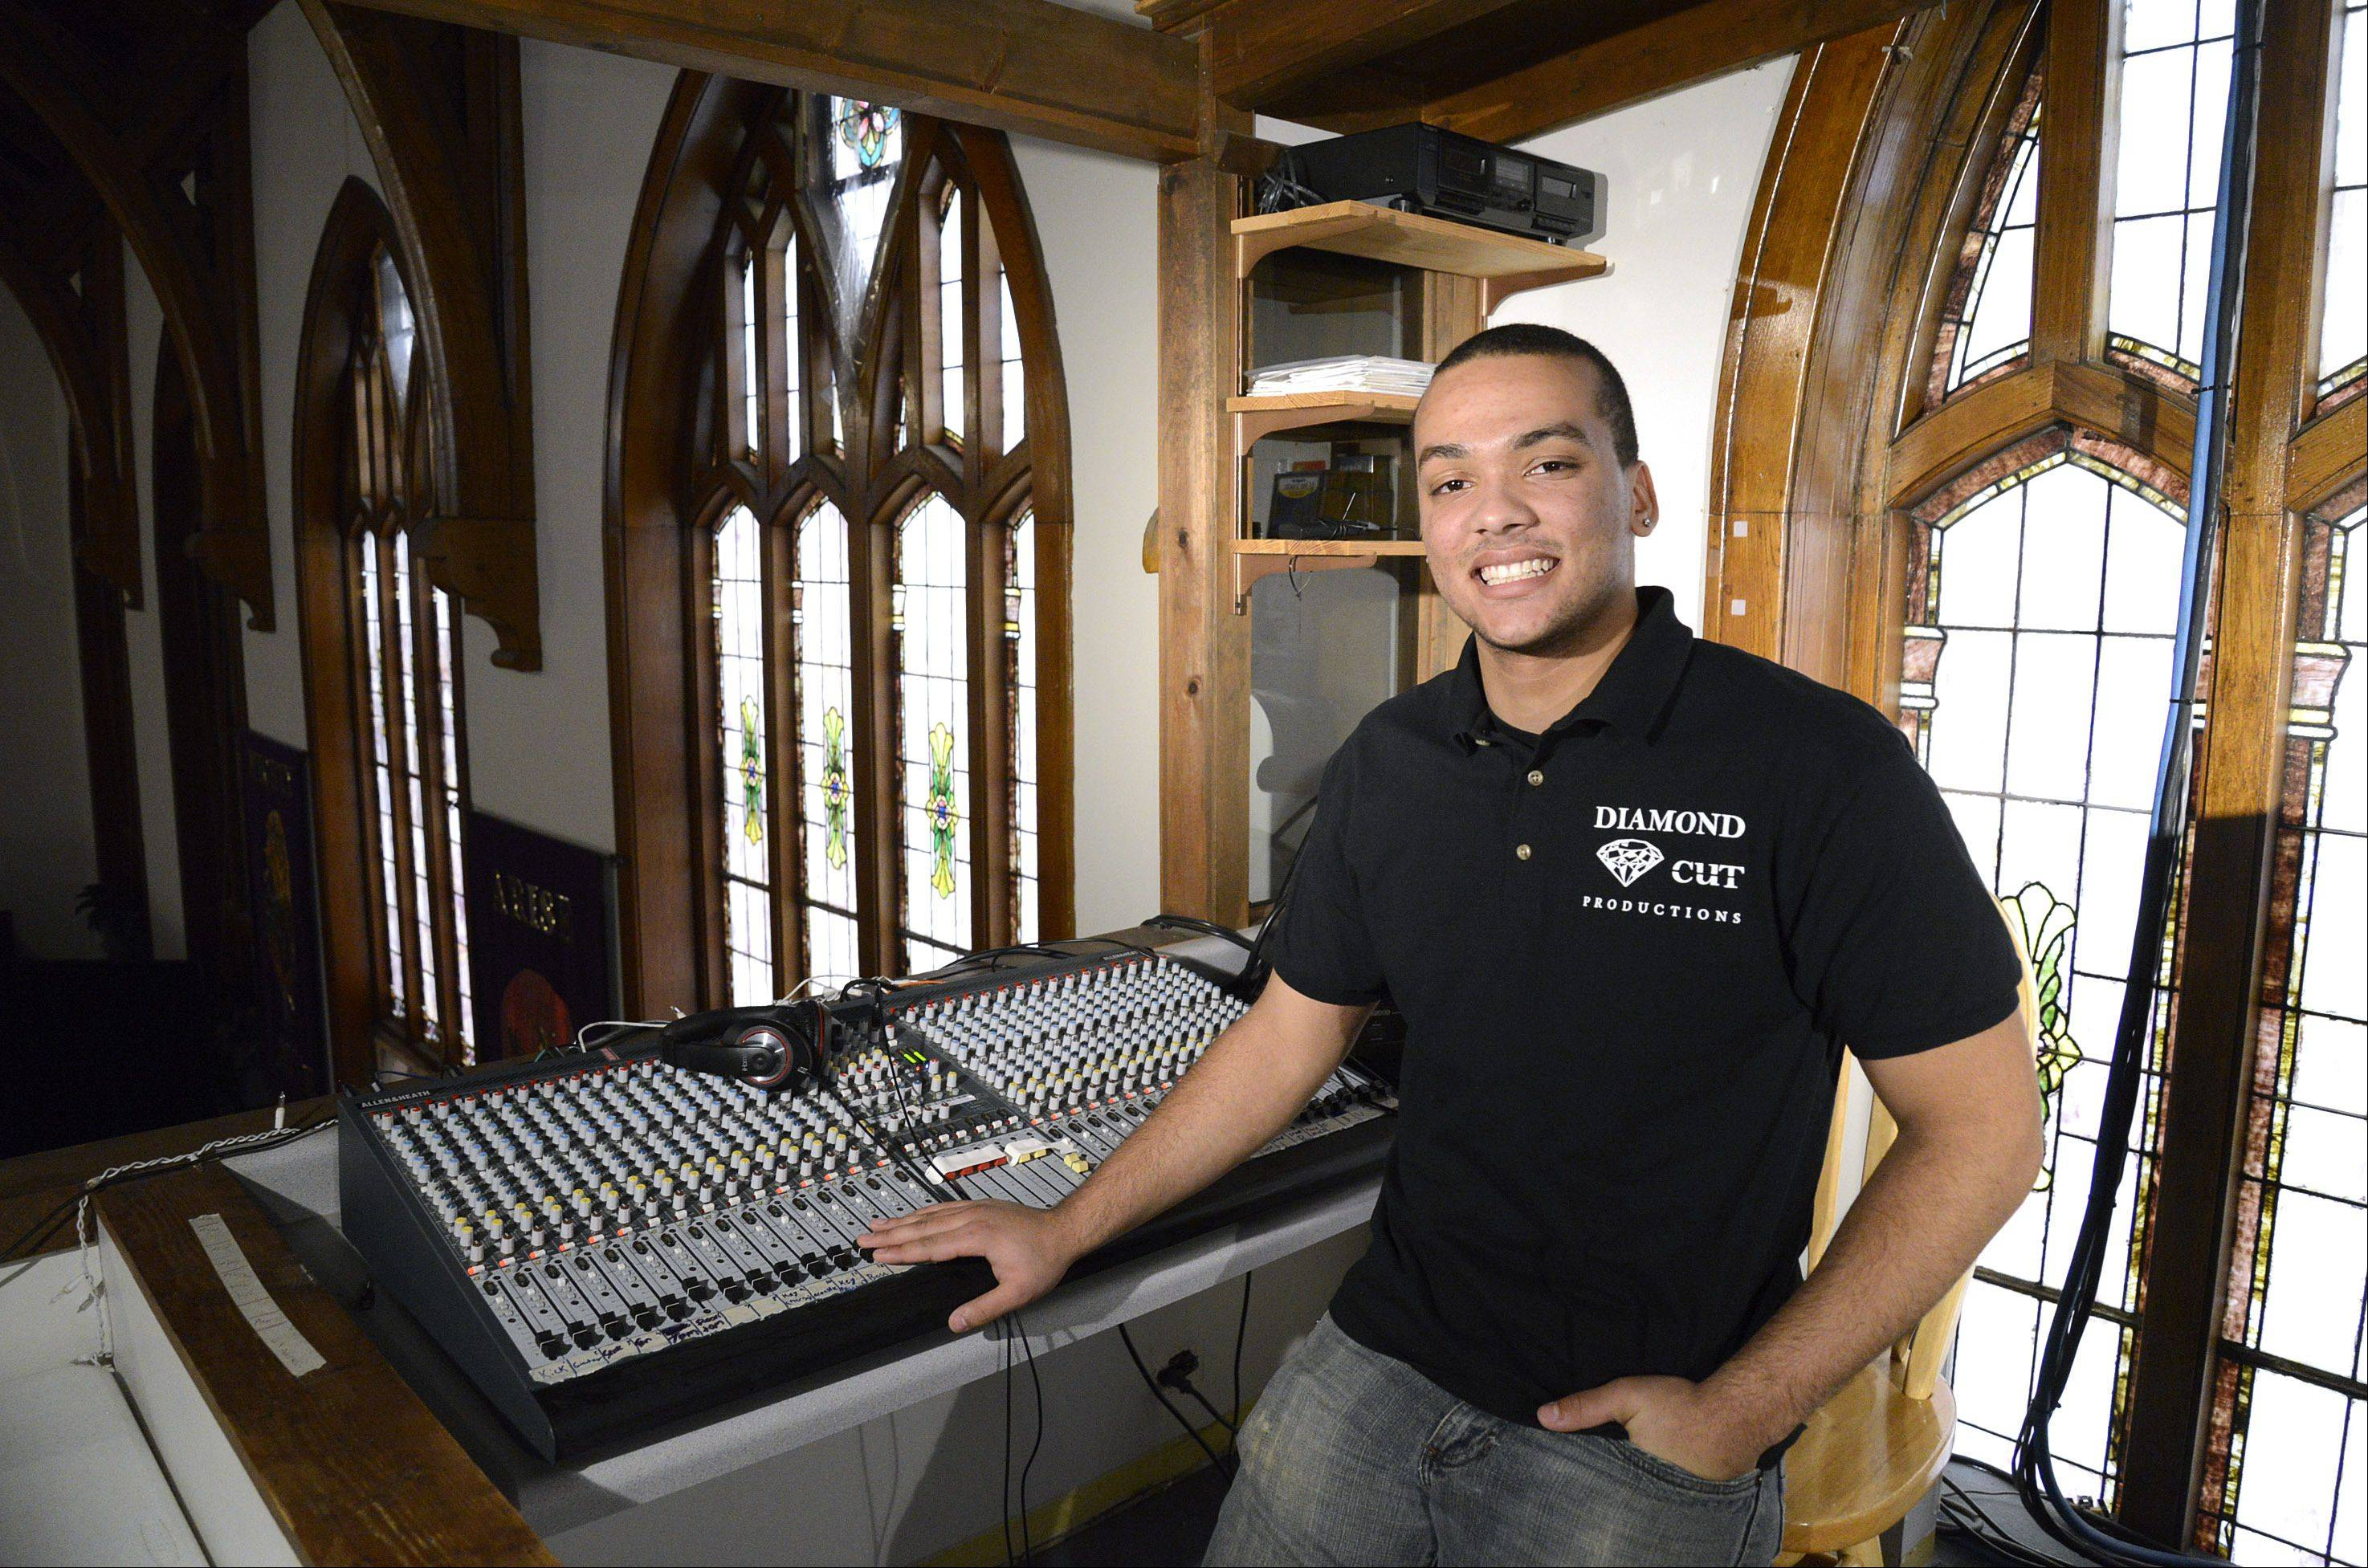 A business owner at just 17, Breje Whitt plans to make a career in the music industry. The Elgin teen three months ago launched Diamond Cut Productions, a sound/lighting/DJ business, mostly with money he earned while performing with BarlowGirl, an acclaimed Christian rock band.